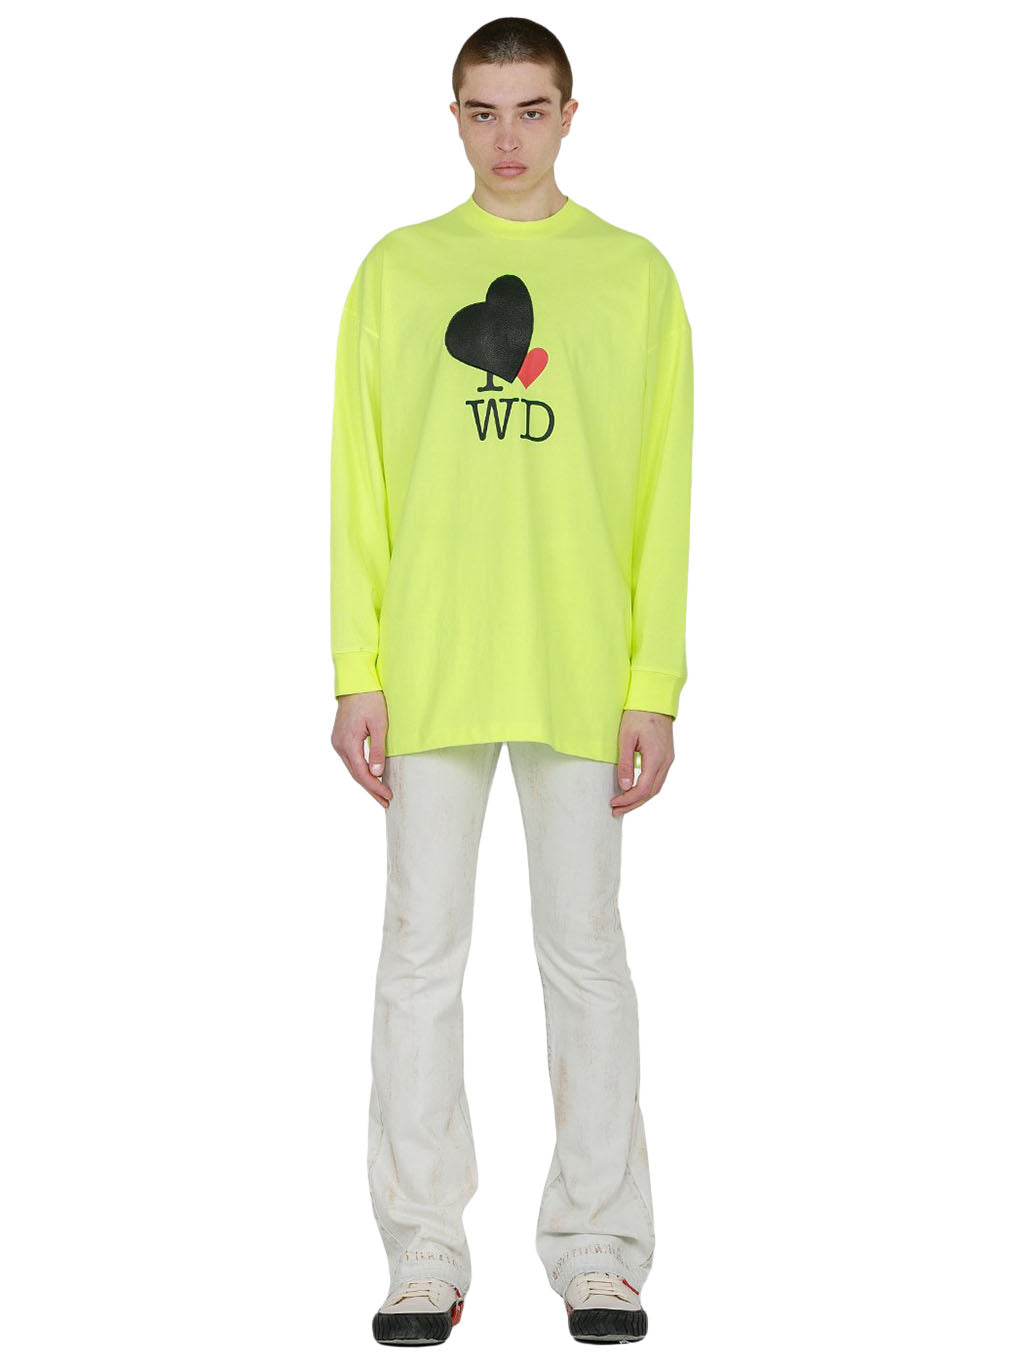 Neon Yellow Heart Patch T-Shirt